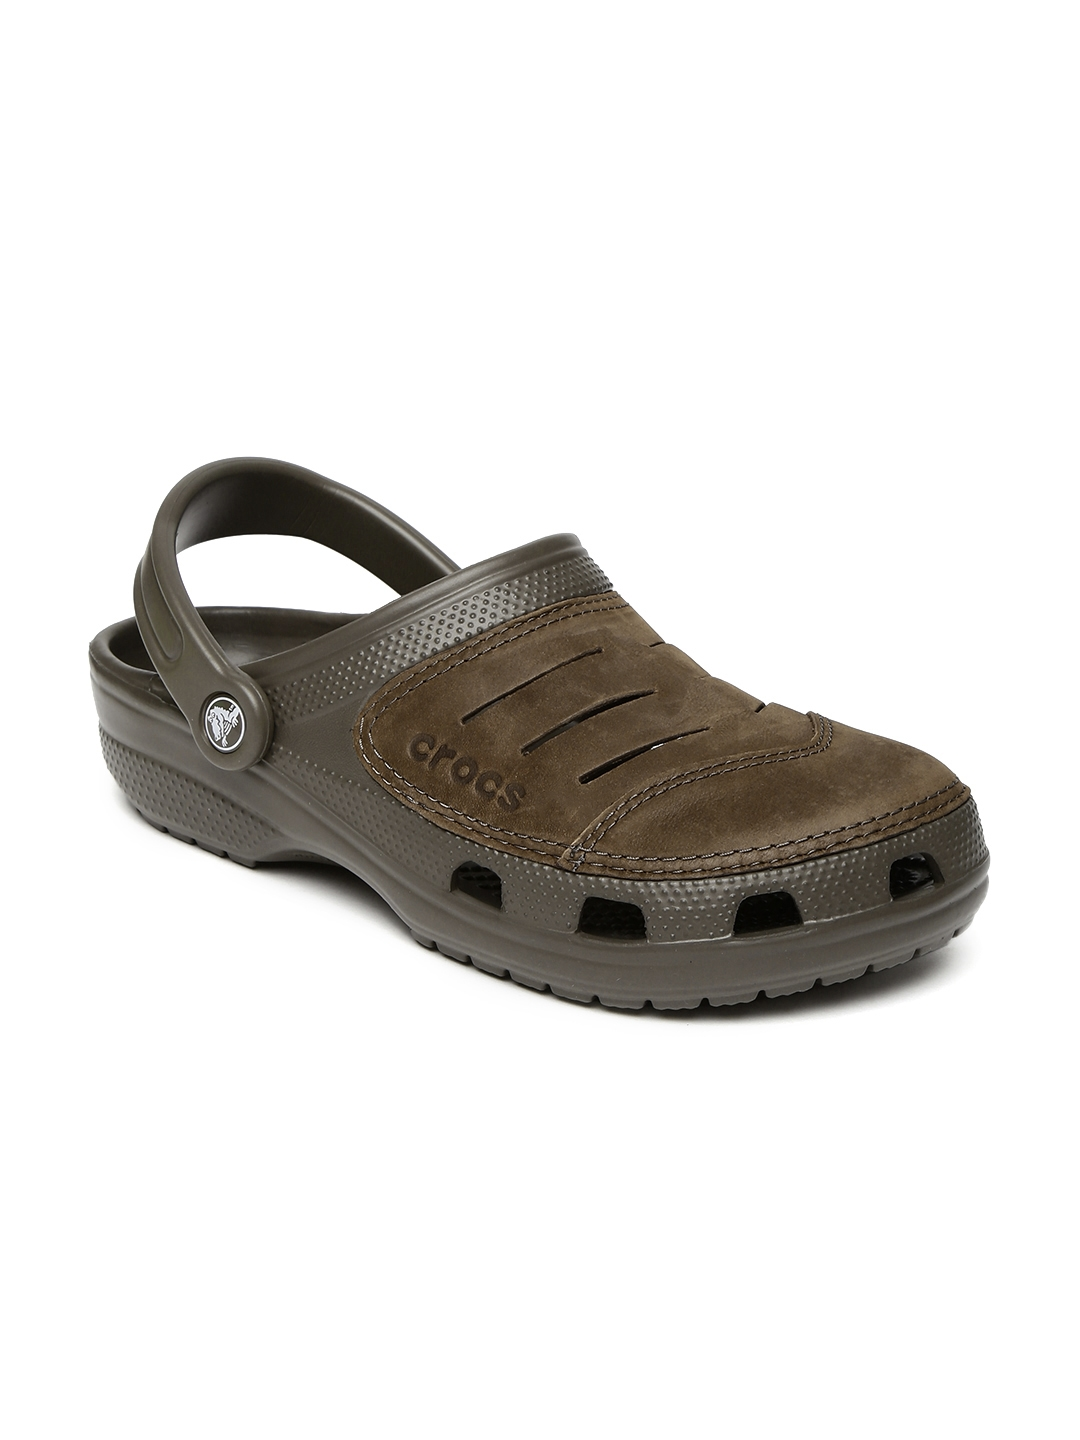 e5feb0dfd5442 Buy Crocs Men Brown Bogota Clogs - Flip Flops for Men 2009094